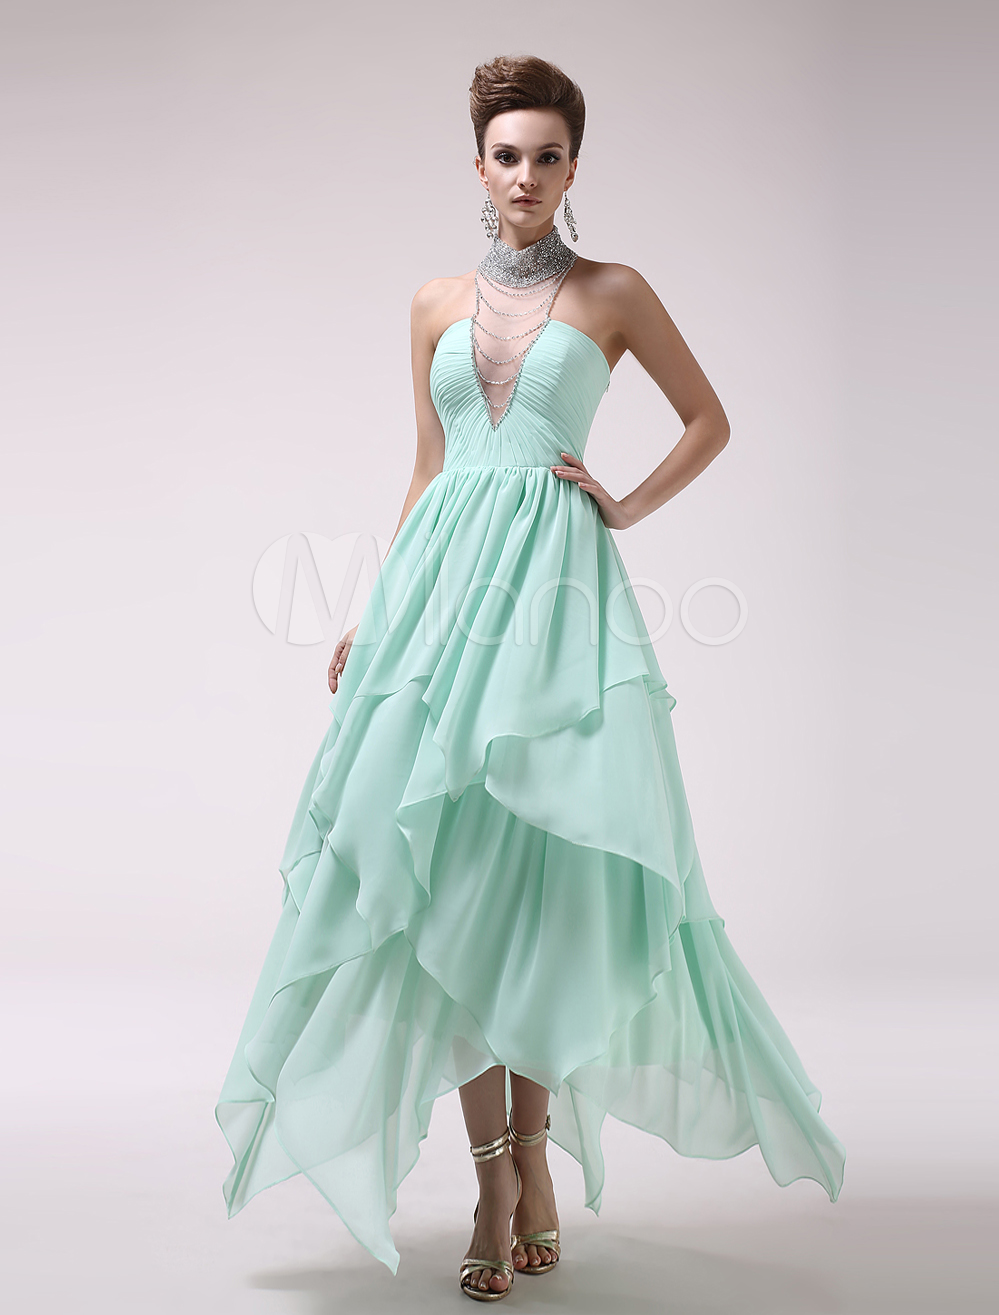 Milanoo ltd prom dresses mint green high collar ruched a